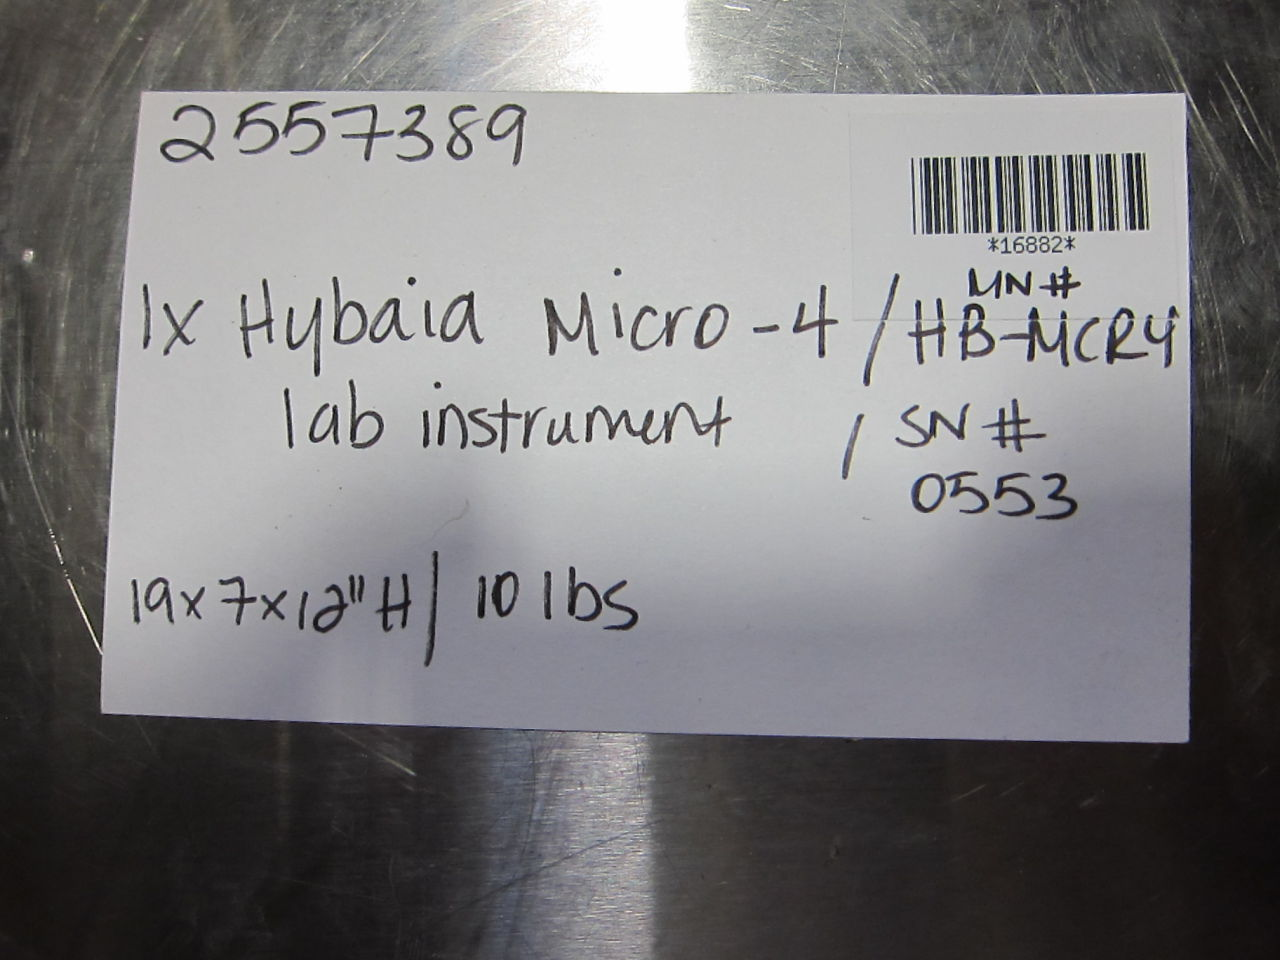 HYBAID Micro-4 Oven - Lab